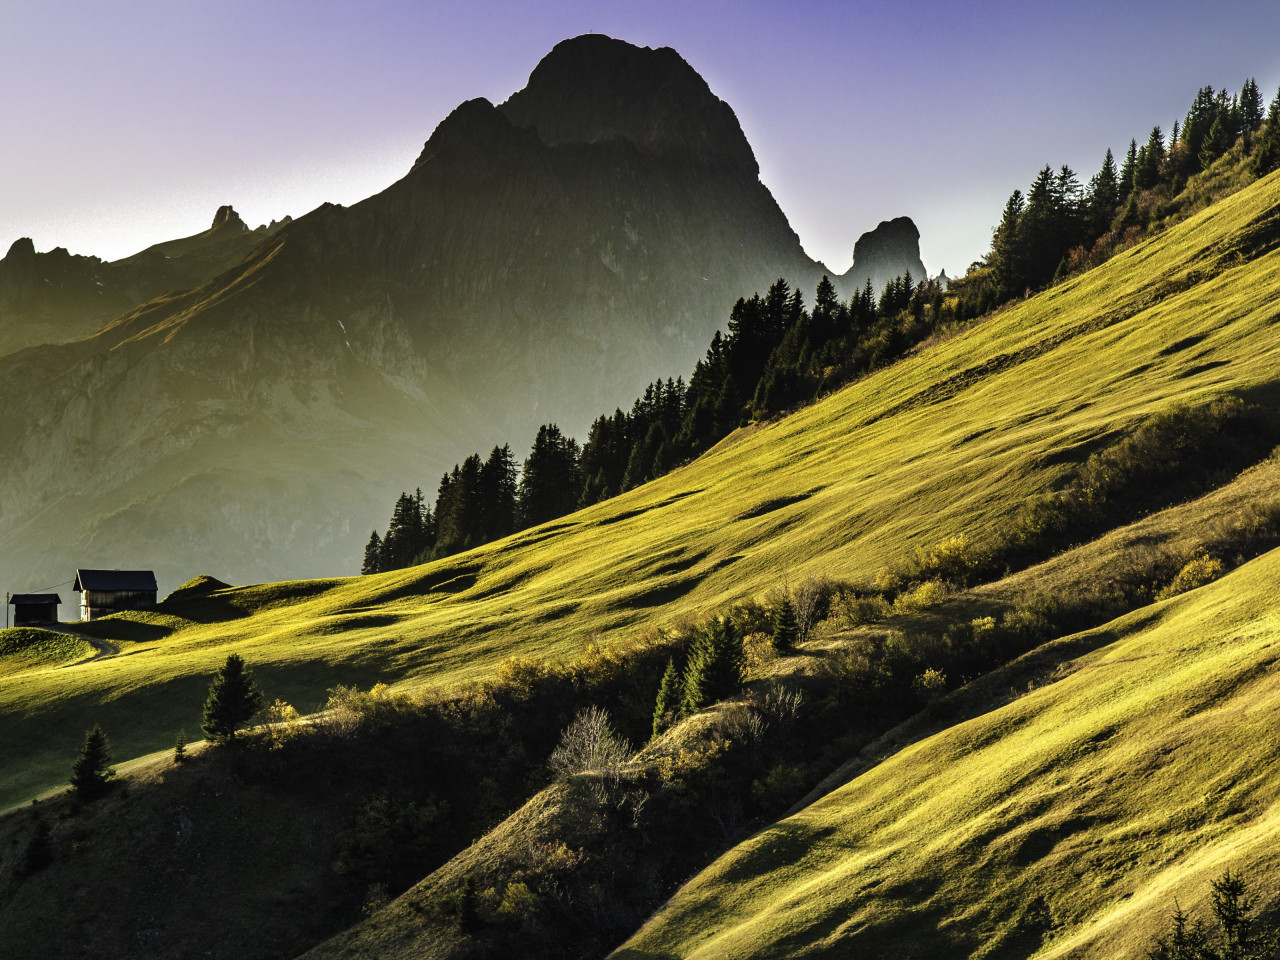 Alpine landscape wallpaper 1280x960